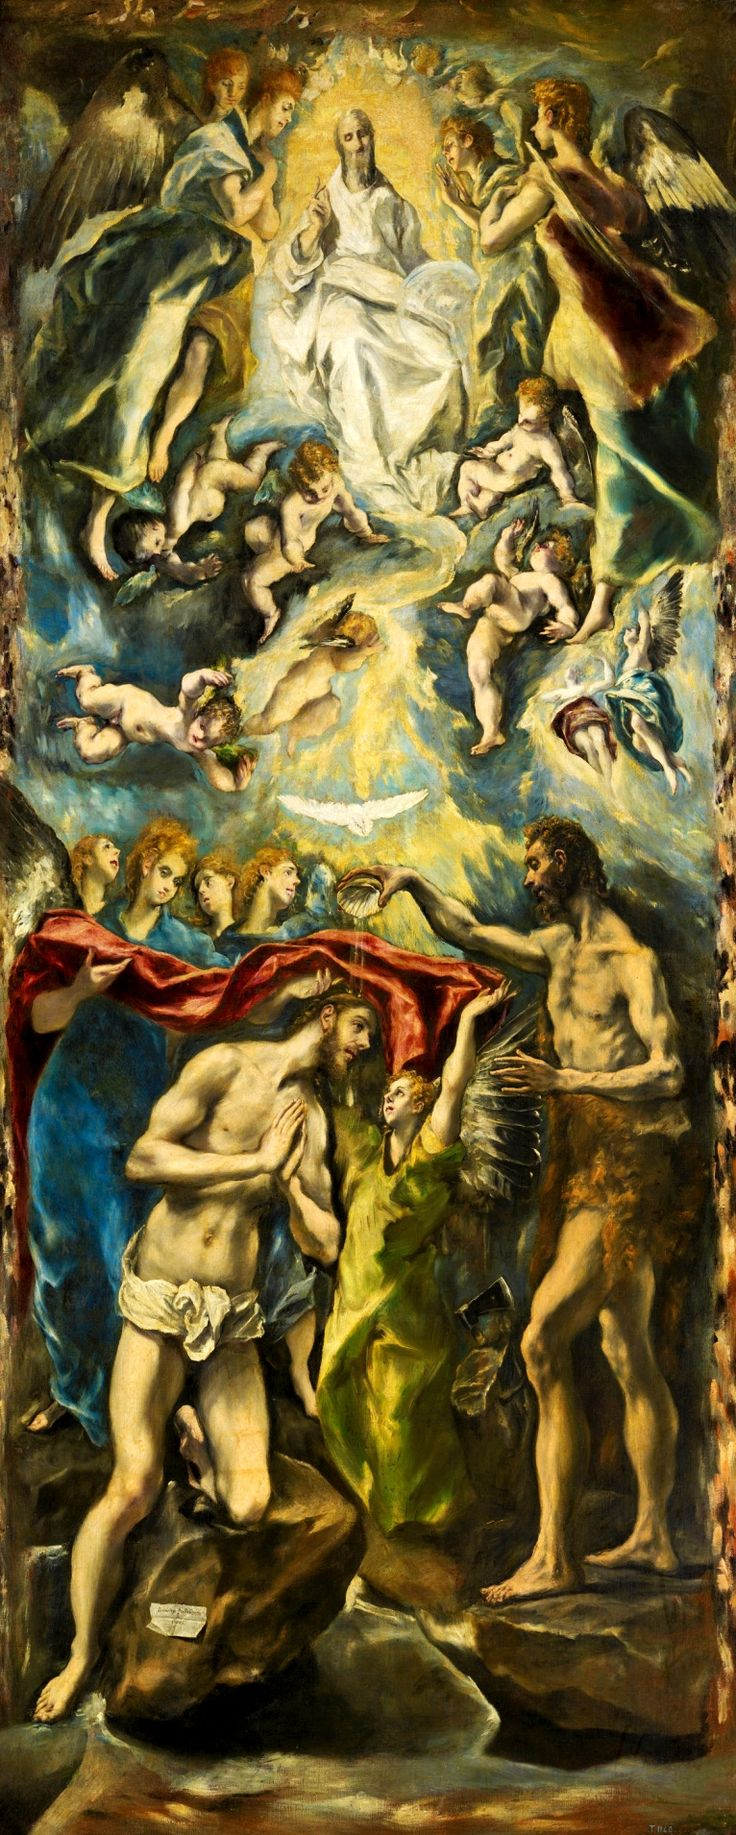 EL GRECO. The Baptism of Christ. 1600.